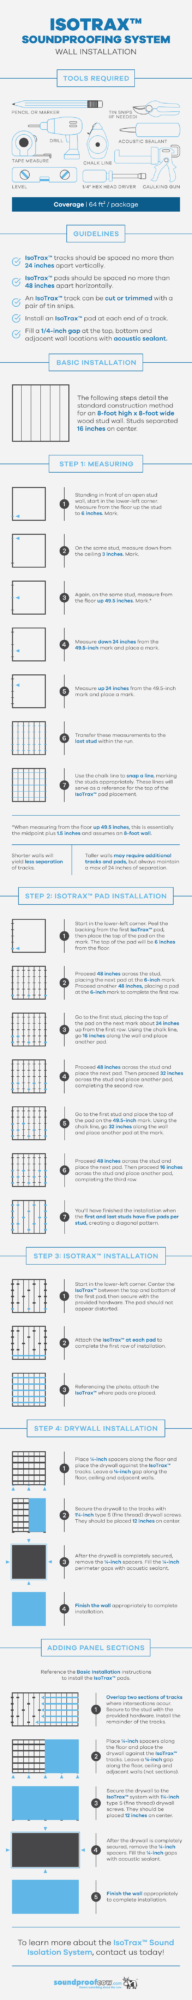 IsoTrax™ Sound Isolation System infographic